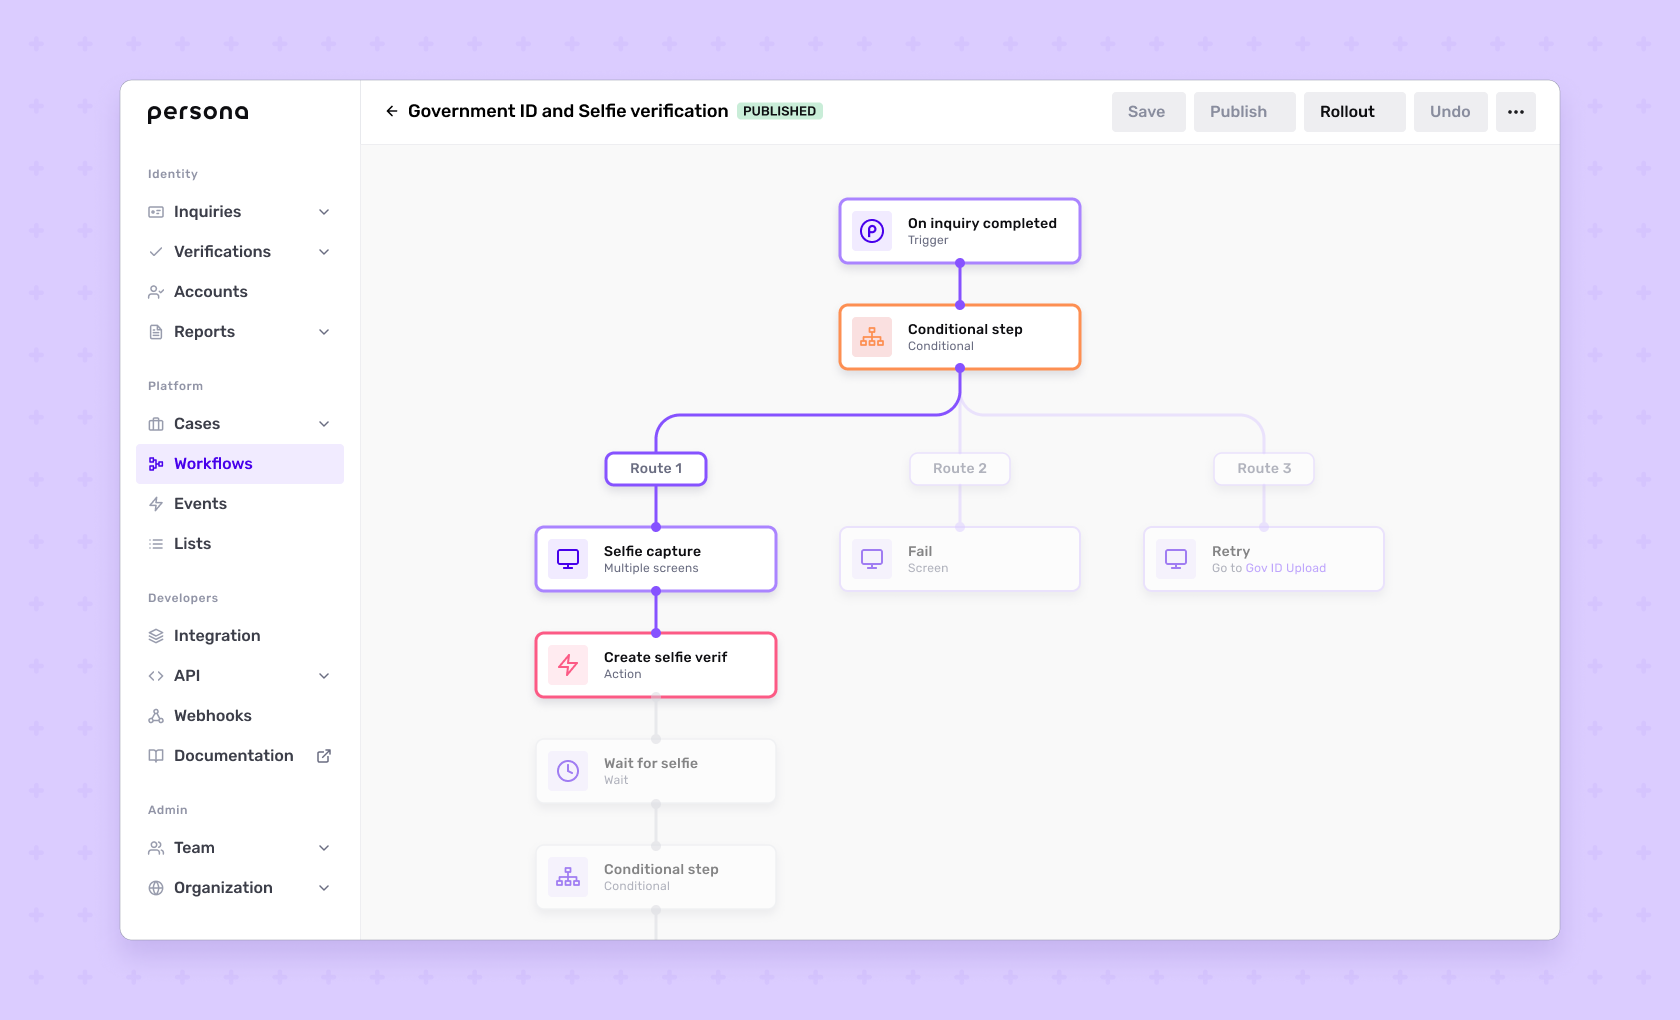 Automated Workflow showing a GovernmentID and Selfie flow